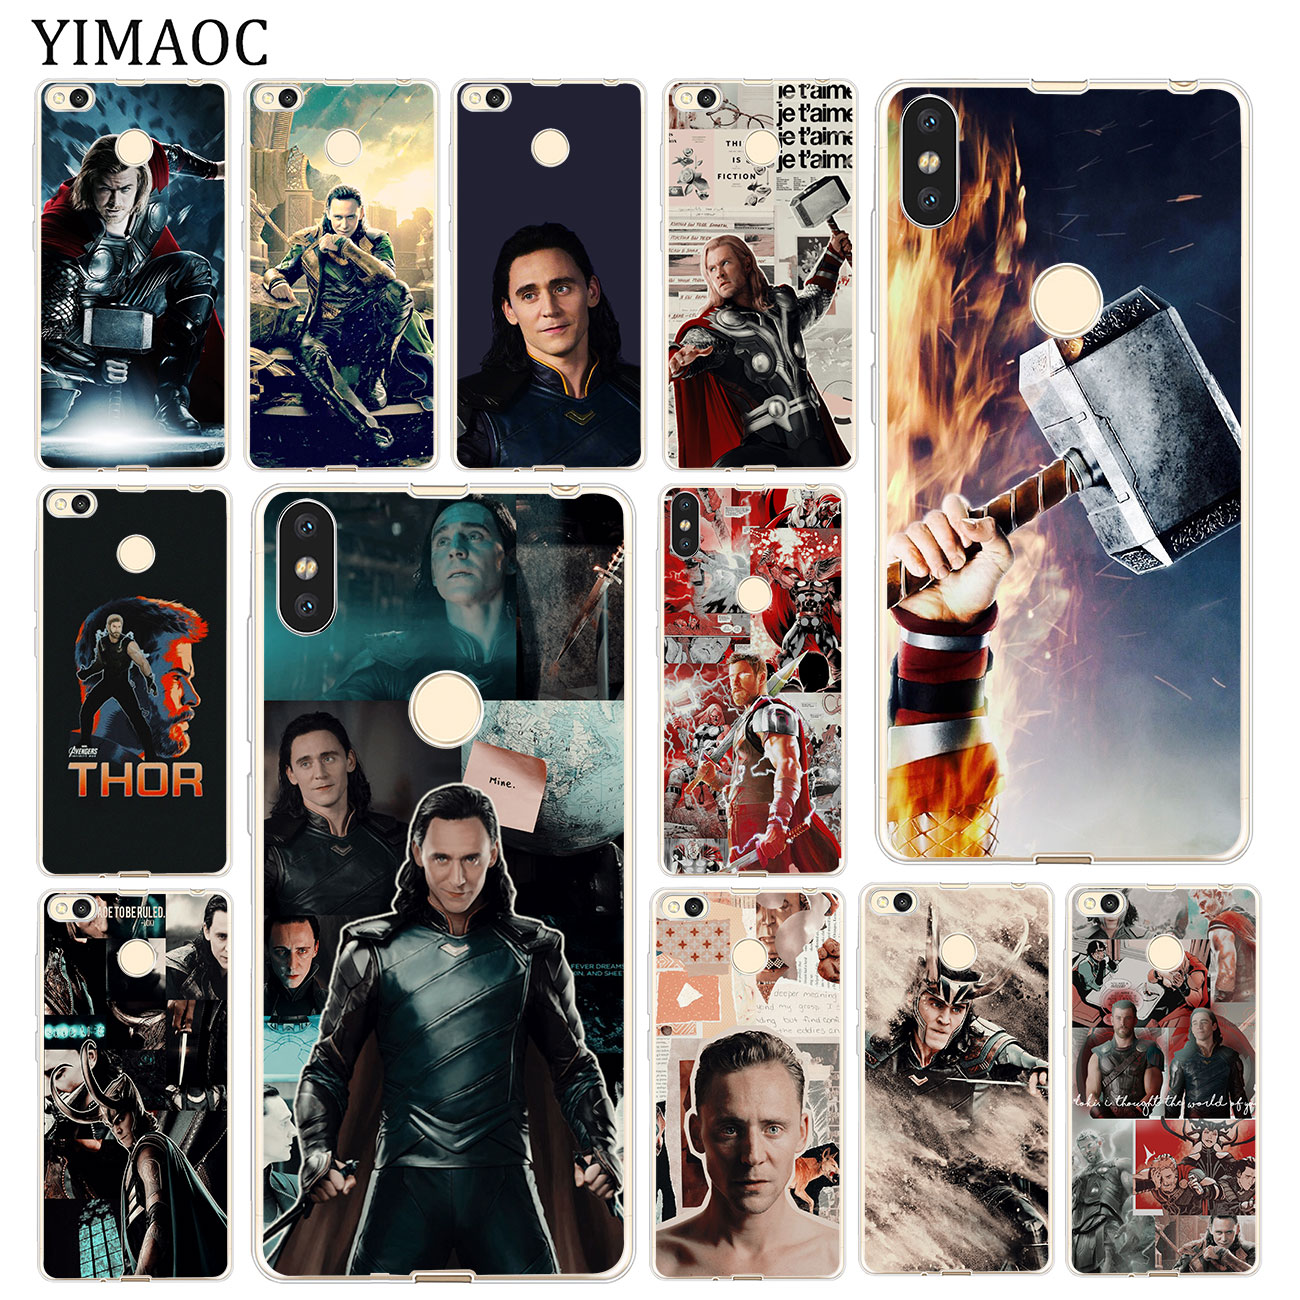 YIMAOC Thor loki <font><b>Marvel</b></font> Soft Silicone <font><b>Case</b></font> for <font><b>Xiaomi</b></font> MI <font><b>Redmi</b></font> 8A 7A 6A 5A 4X <font><b>Note</b></font> 8 7 6 Pro 5 Plus Cover image